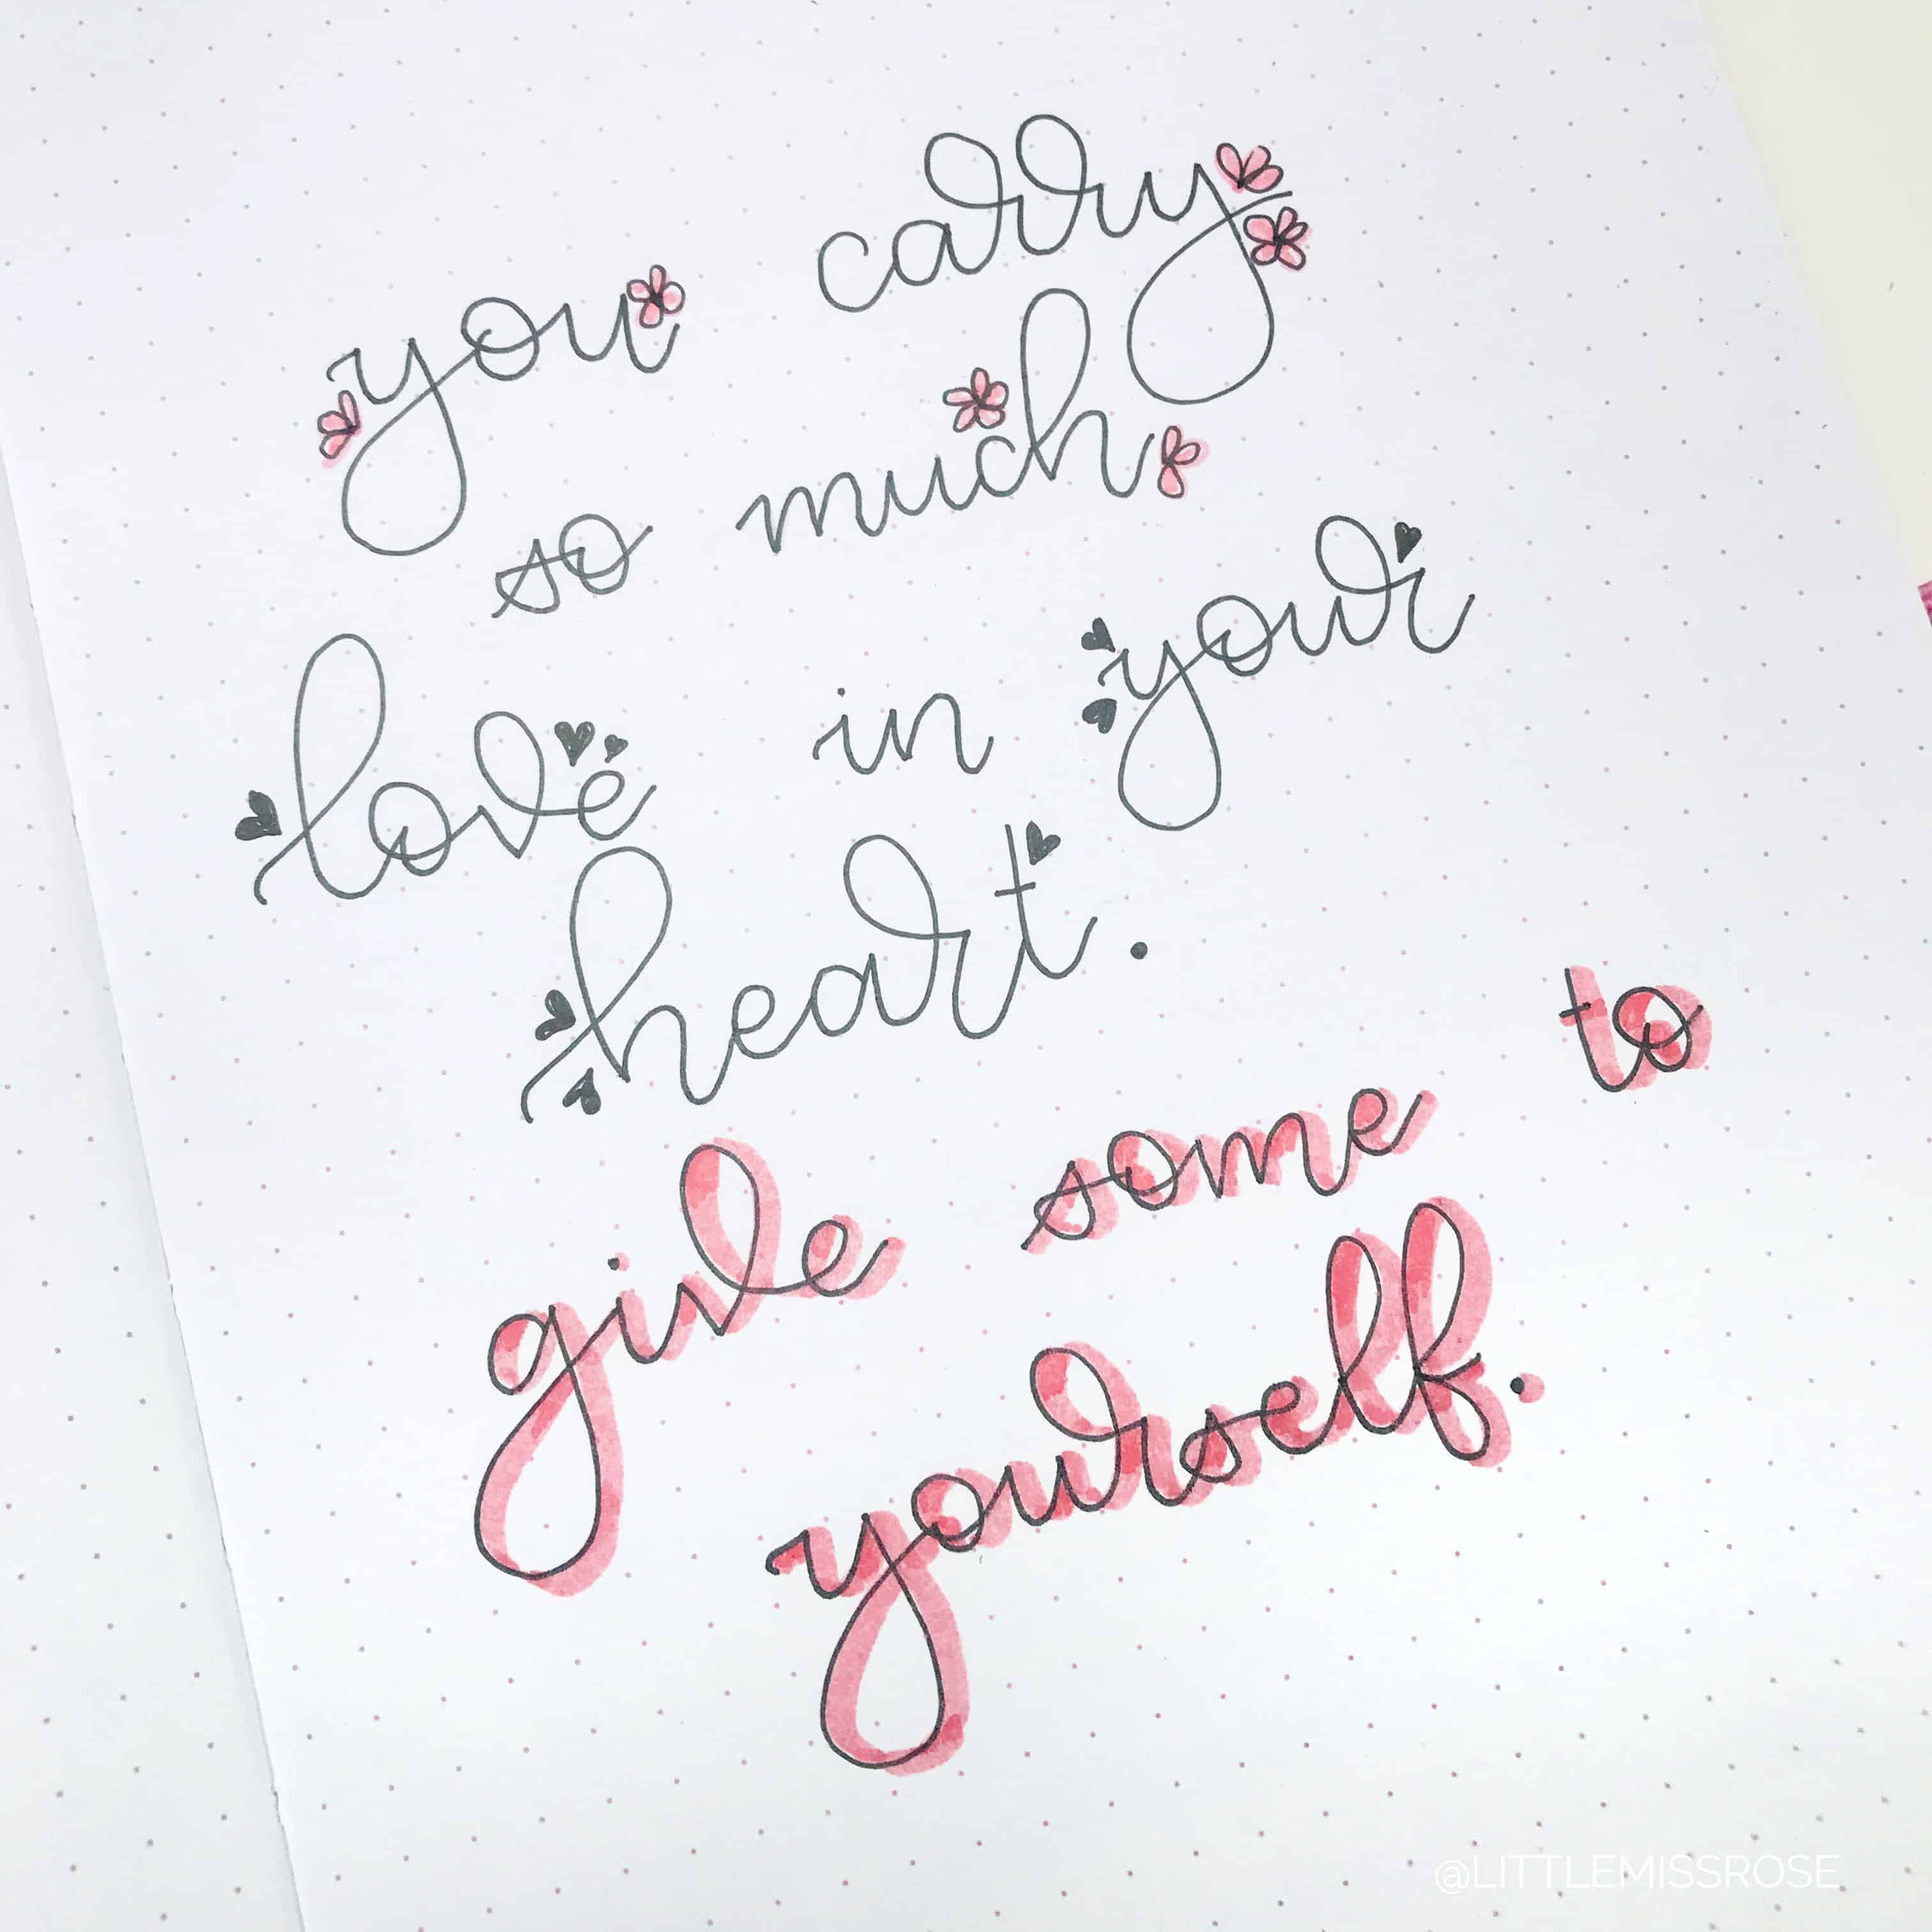 Romantic hand lettering ideas for your bullet journal that anyone can create!